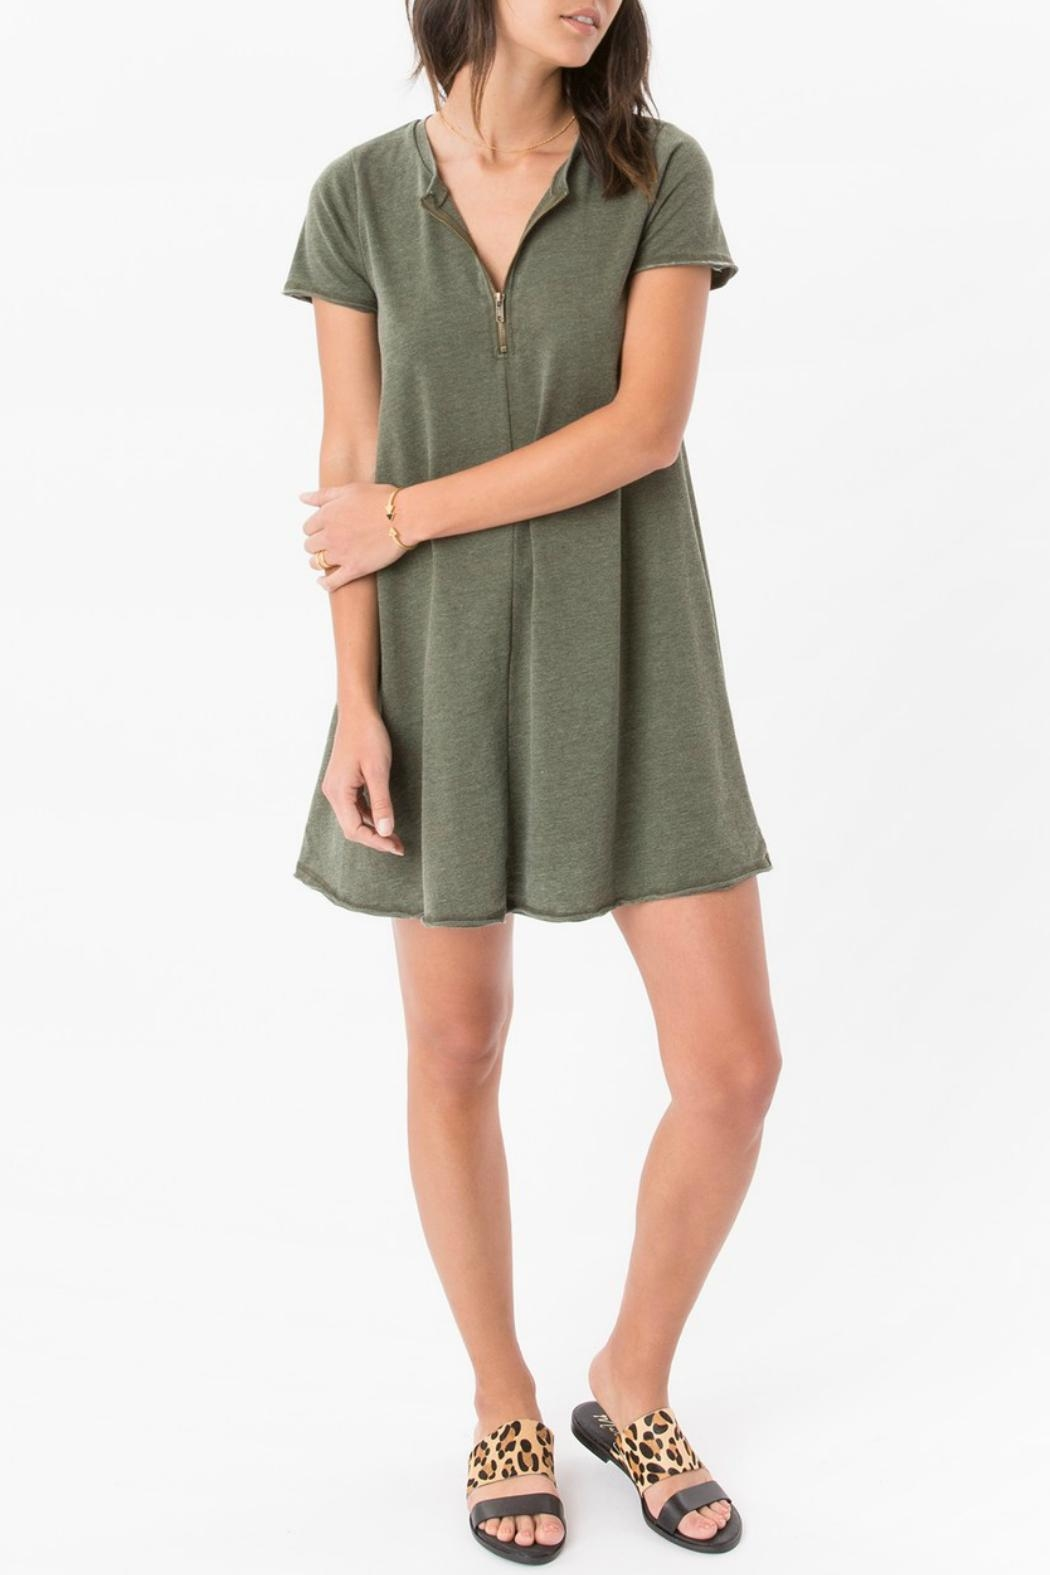 z supply Zip Swing Dress - Back Cropped Image